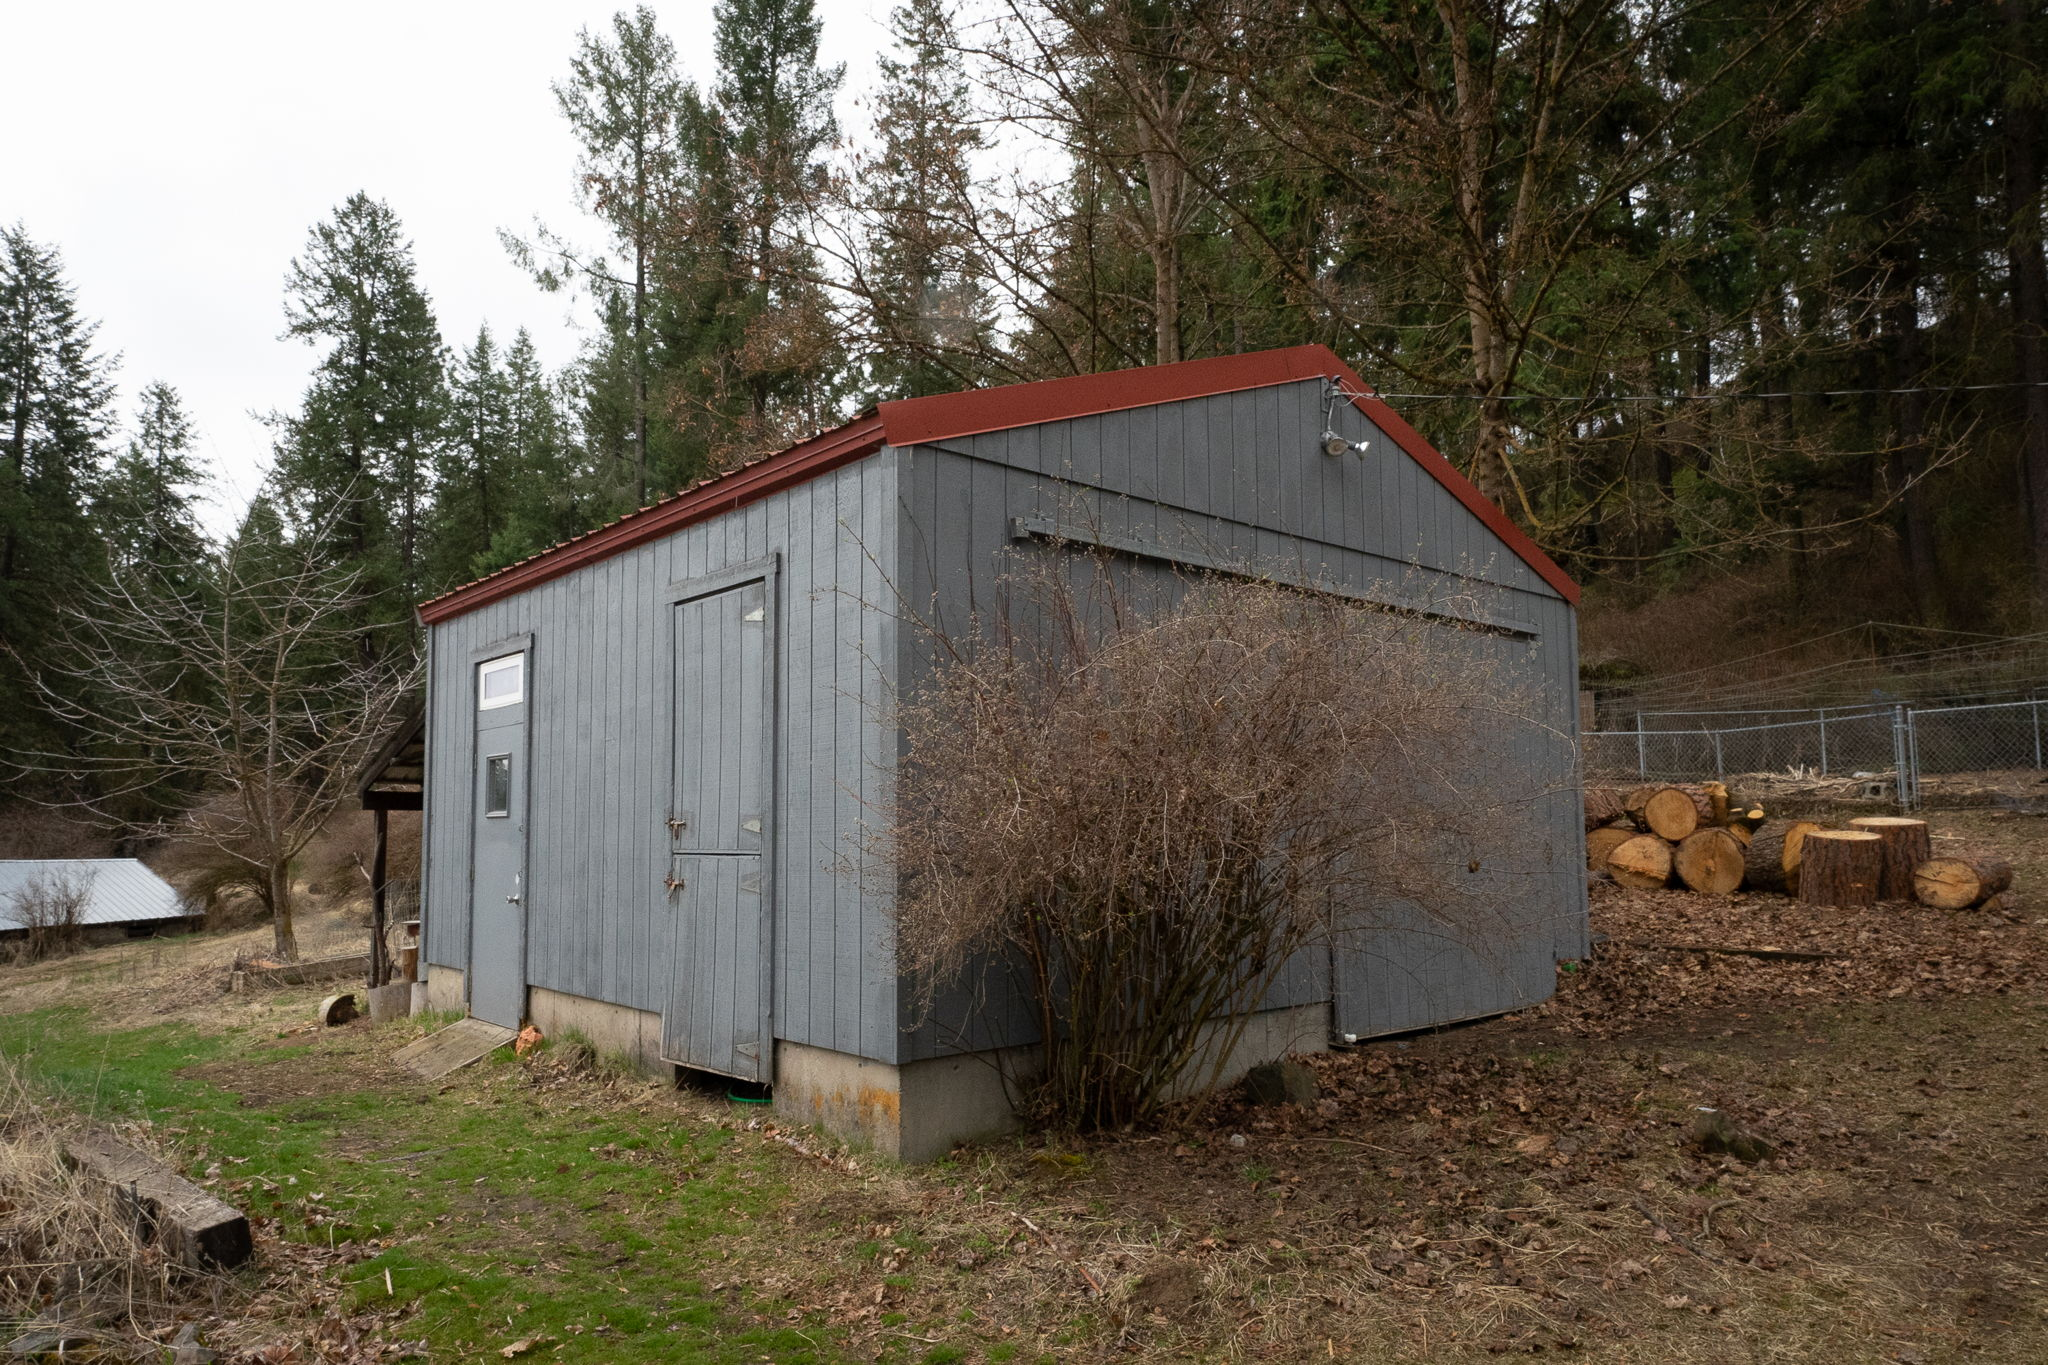 Insulated Seed Room and Potential for Horse Stable